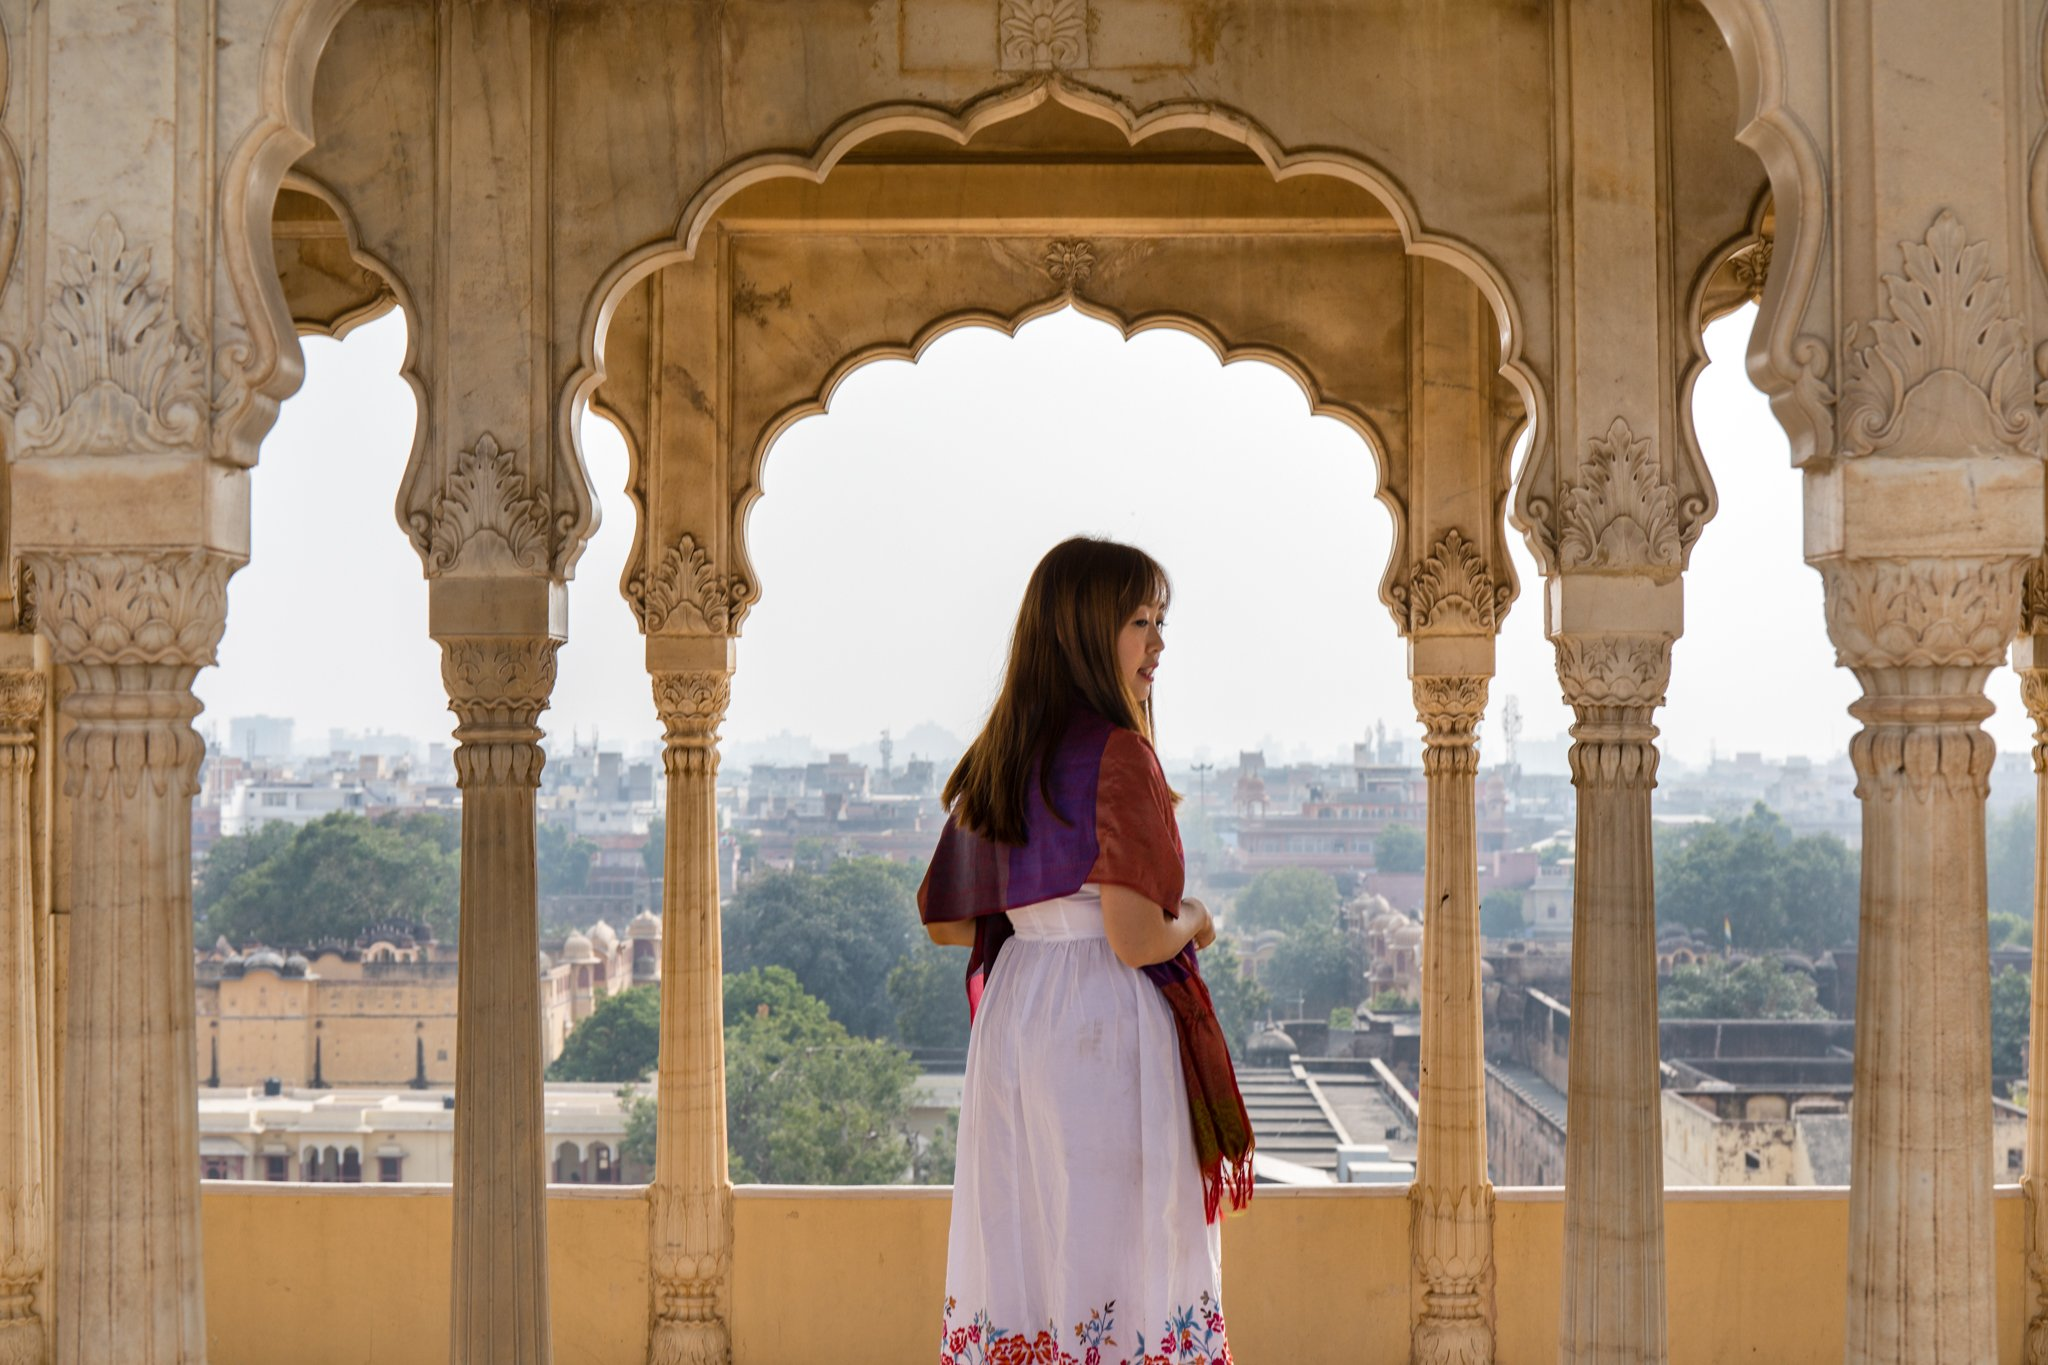 The seventh or the top floor of the Chandra Mahal, also known as Mukut Mandir, gave a stunning view of the City Palace and Jaipur City.